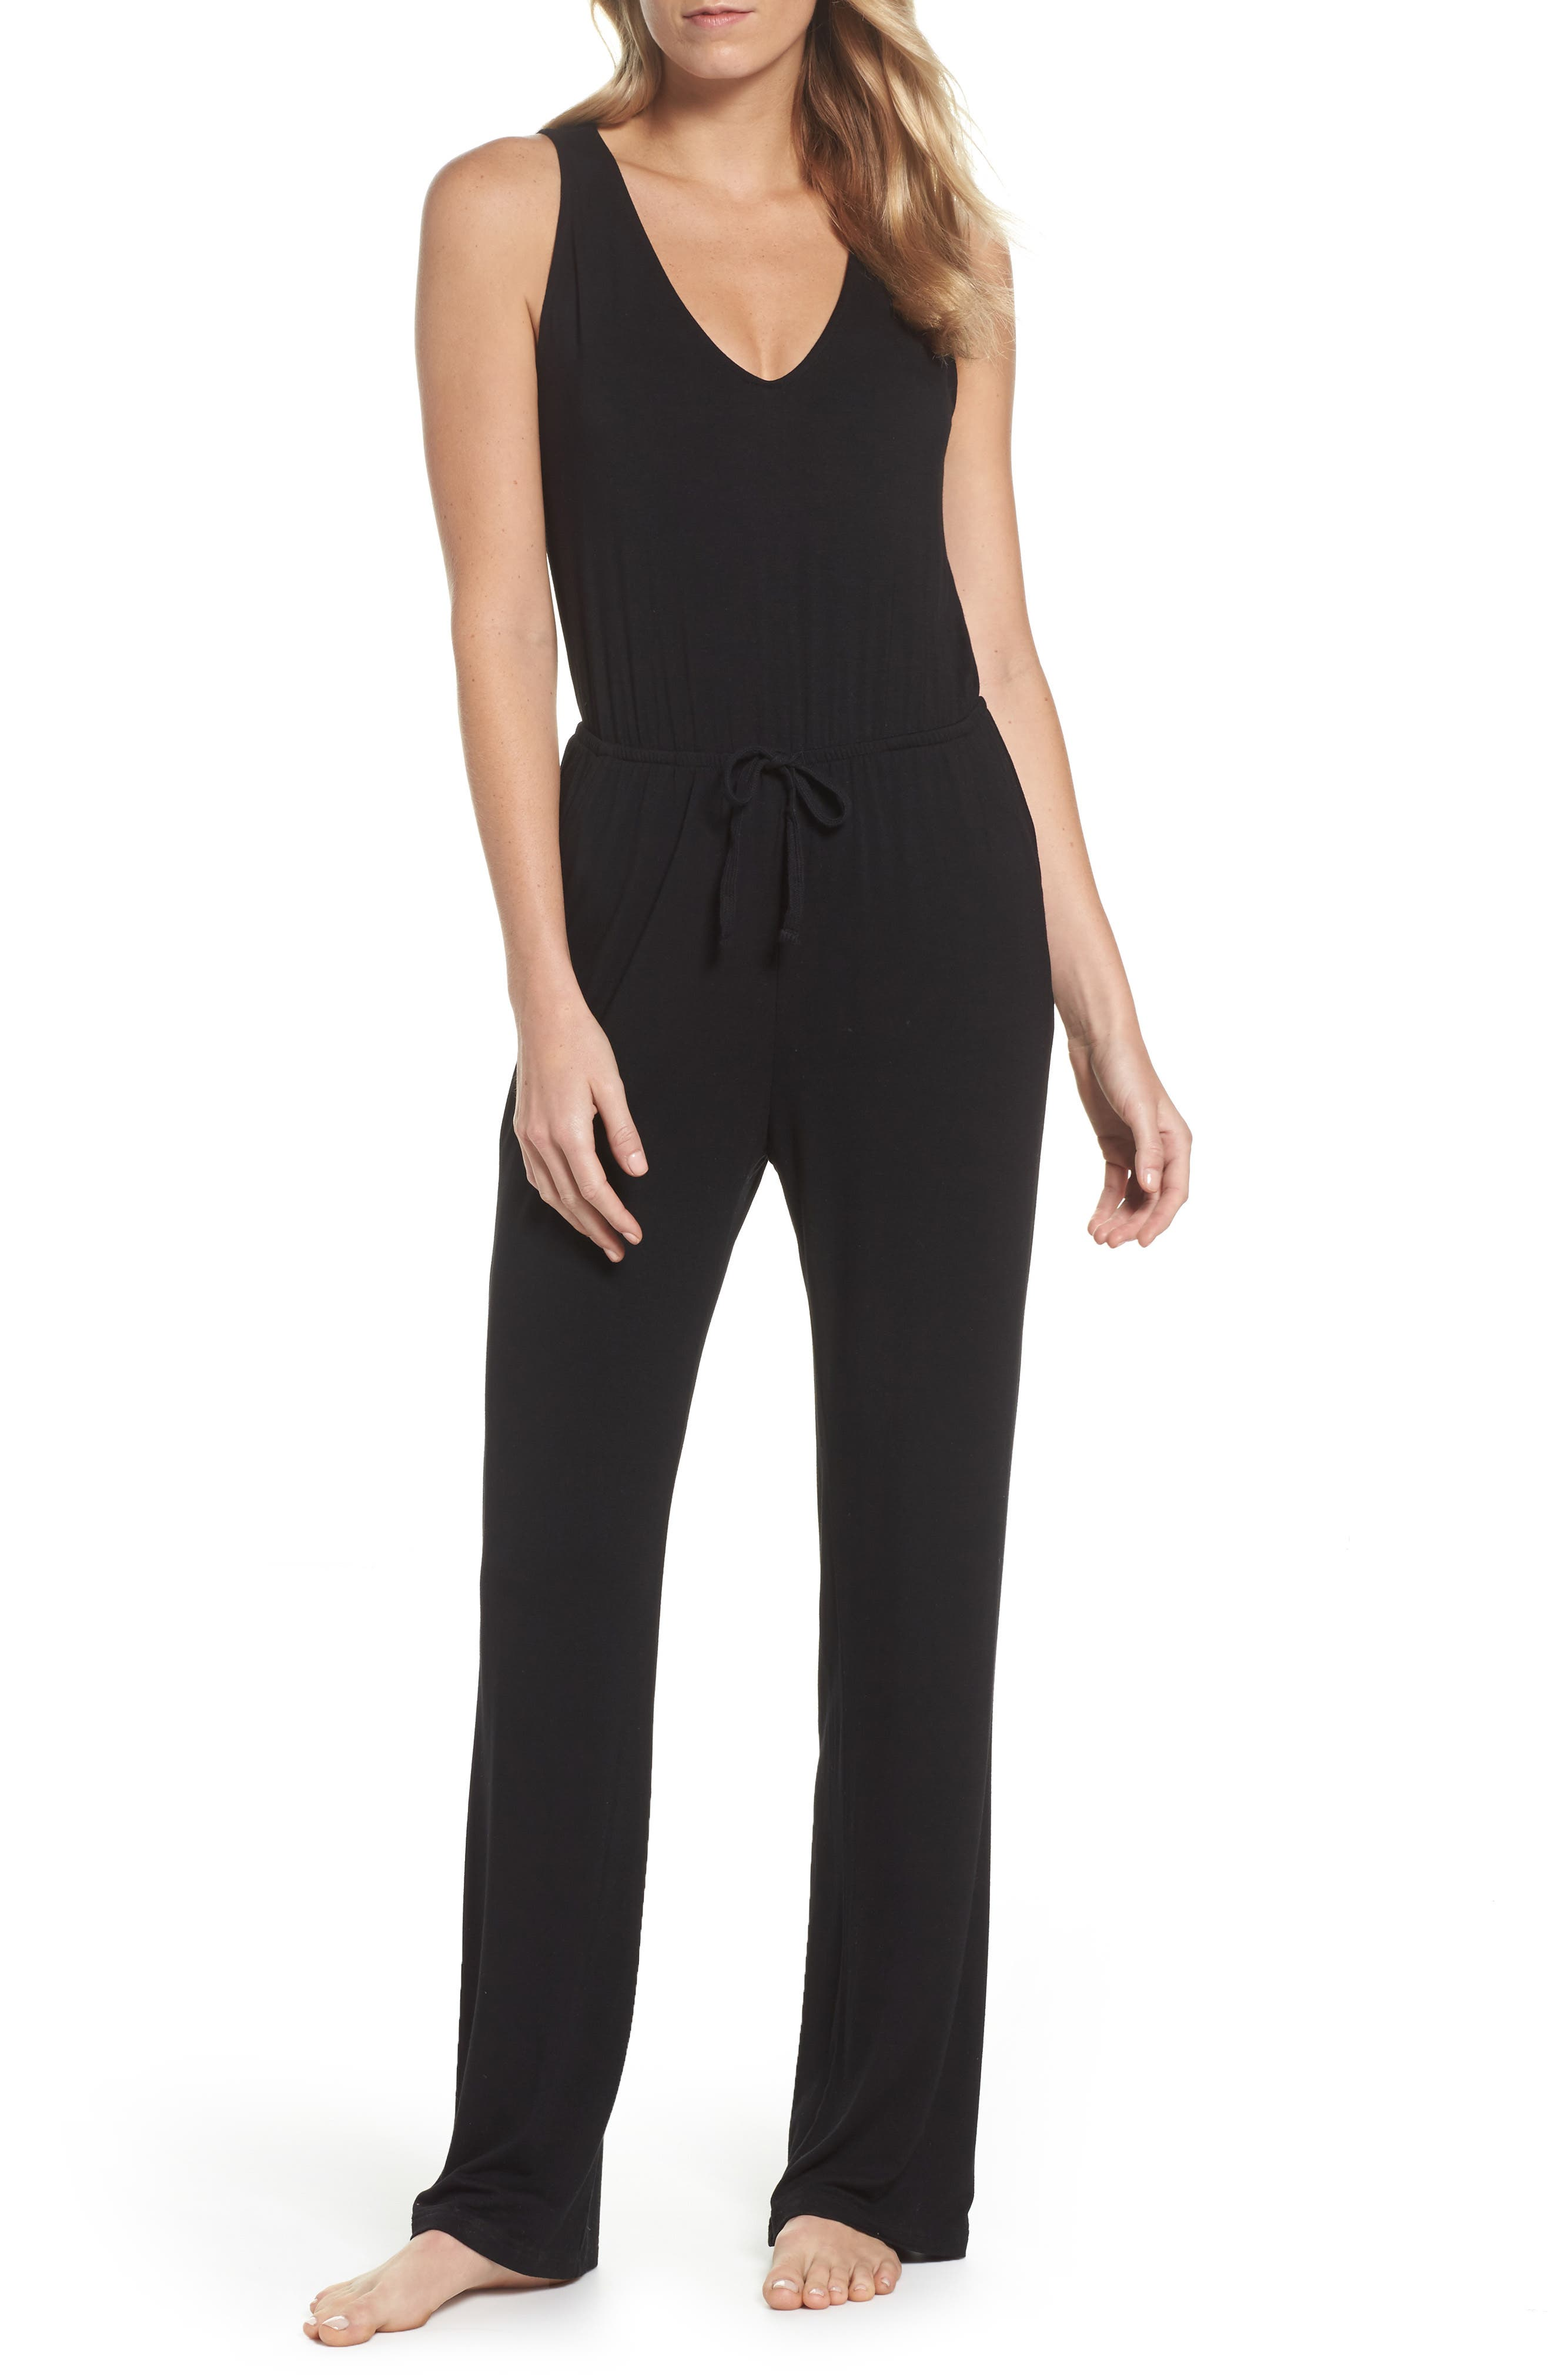 Main Image - BB Dakota Catalina Knit Lounge Jumpsuit